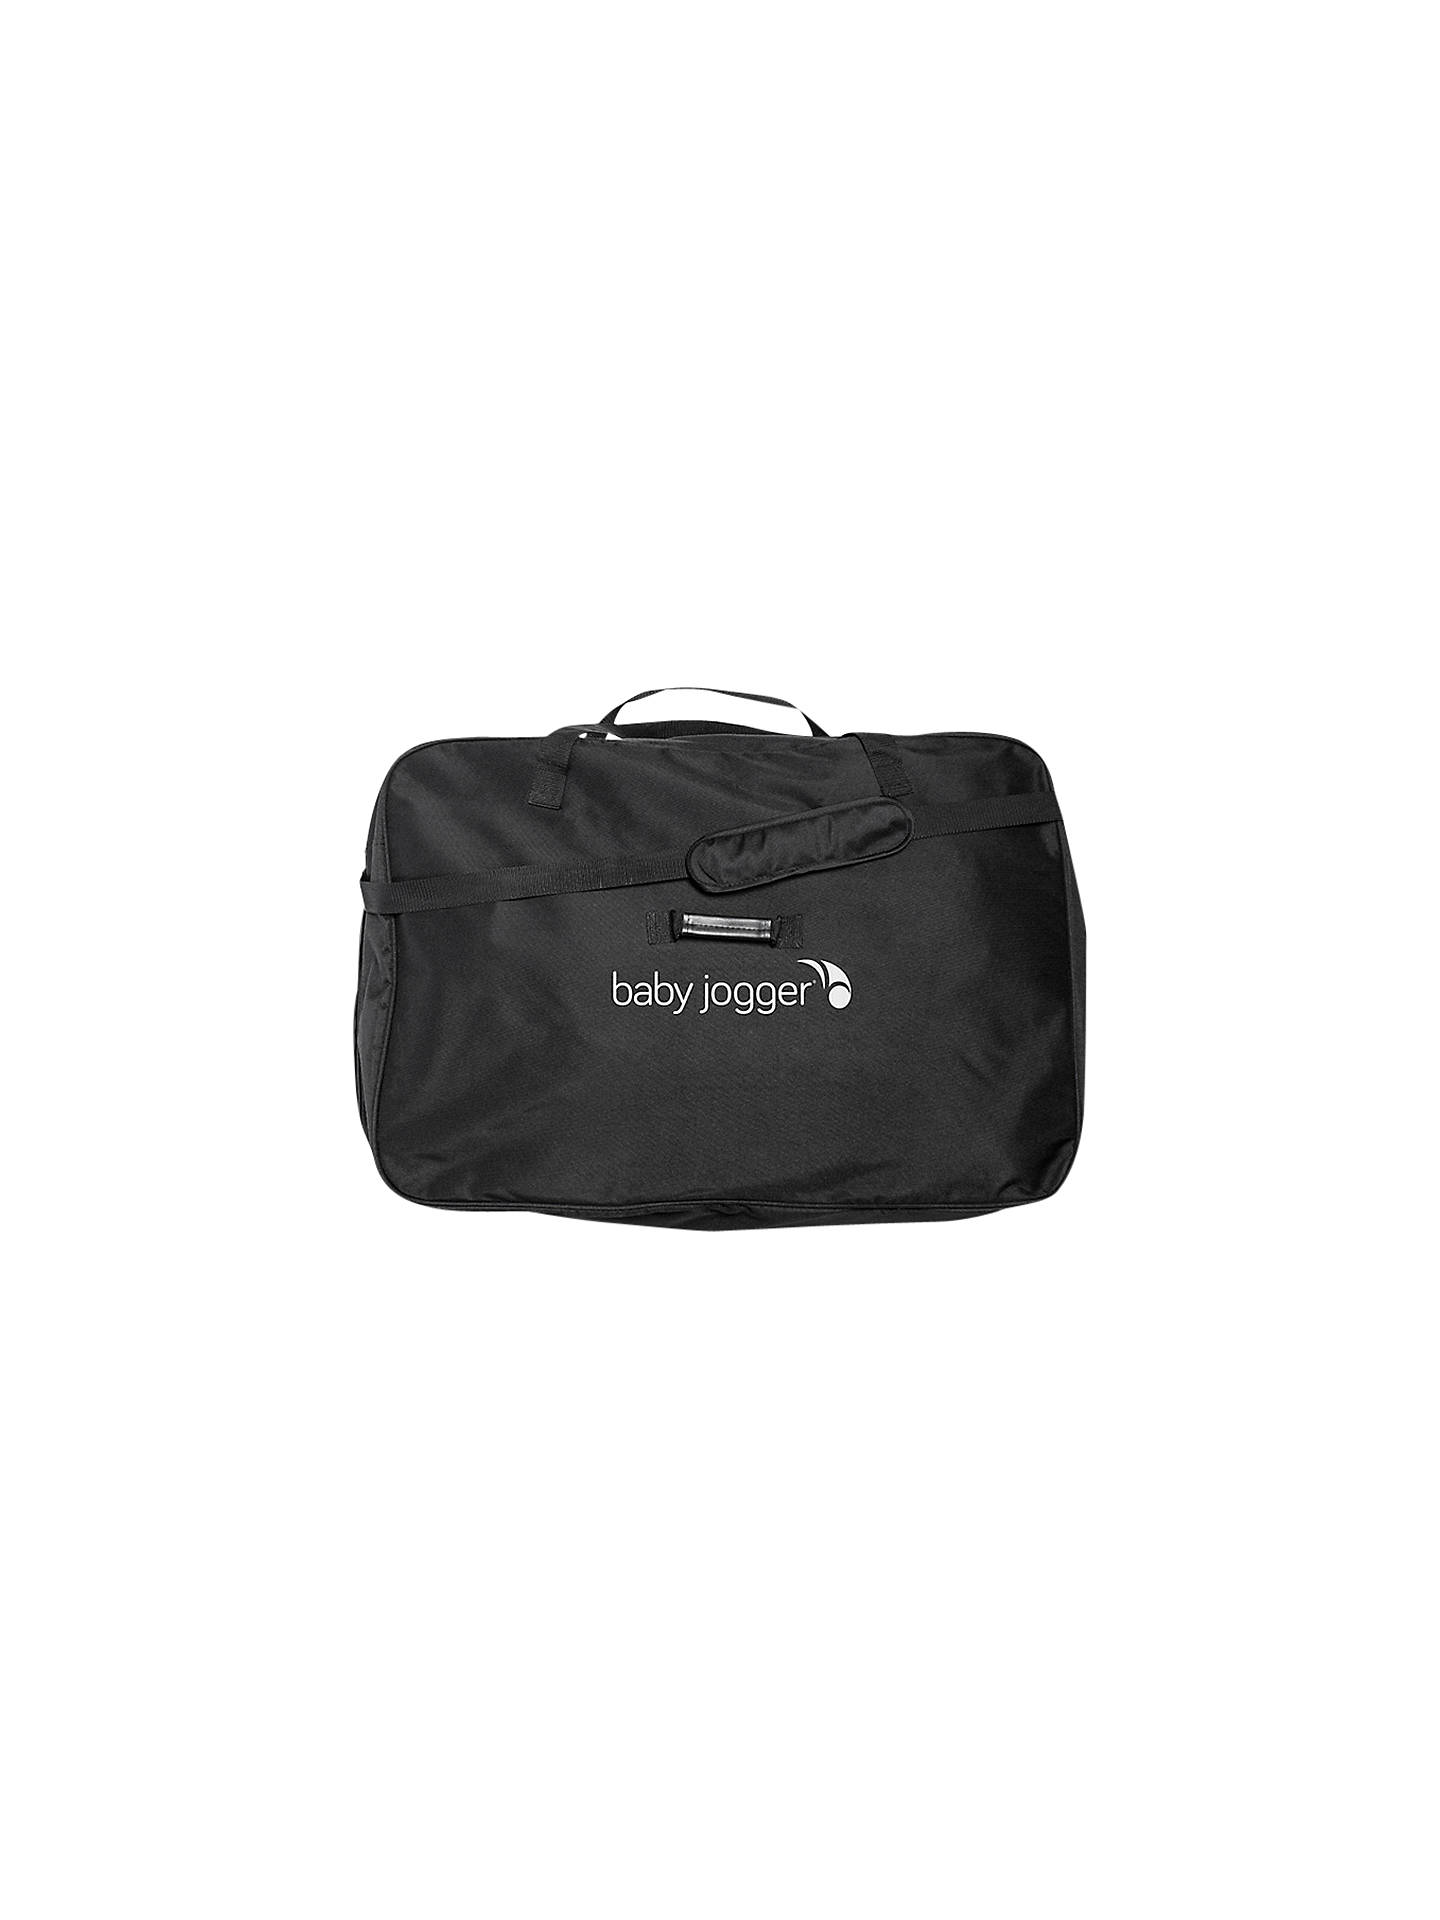 Baby Jogger City Select Carry Bag Online At Johnlewis